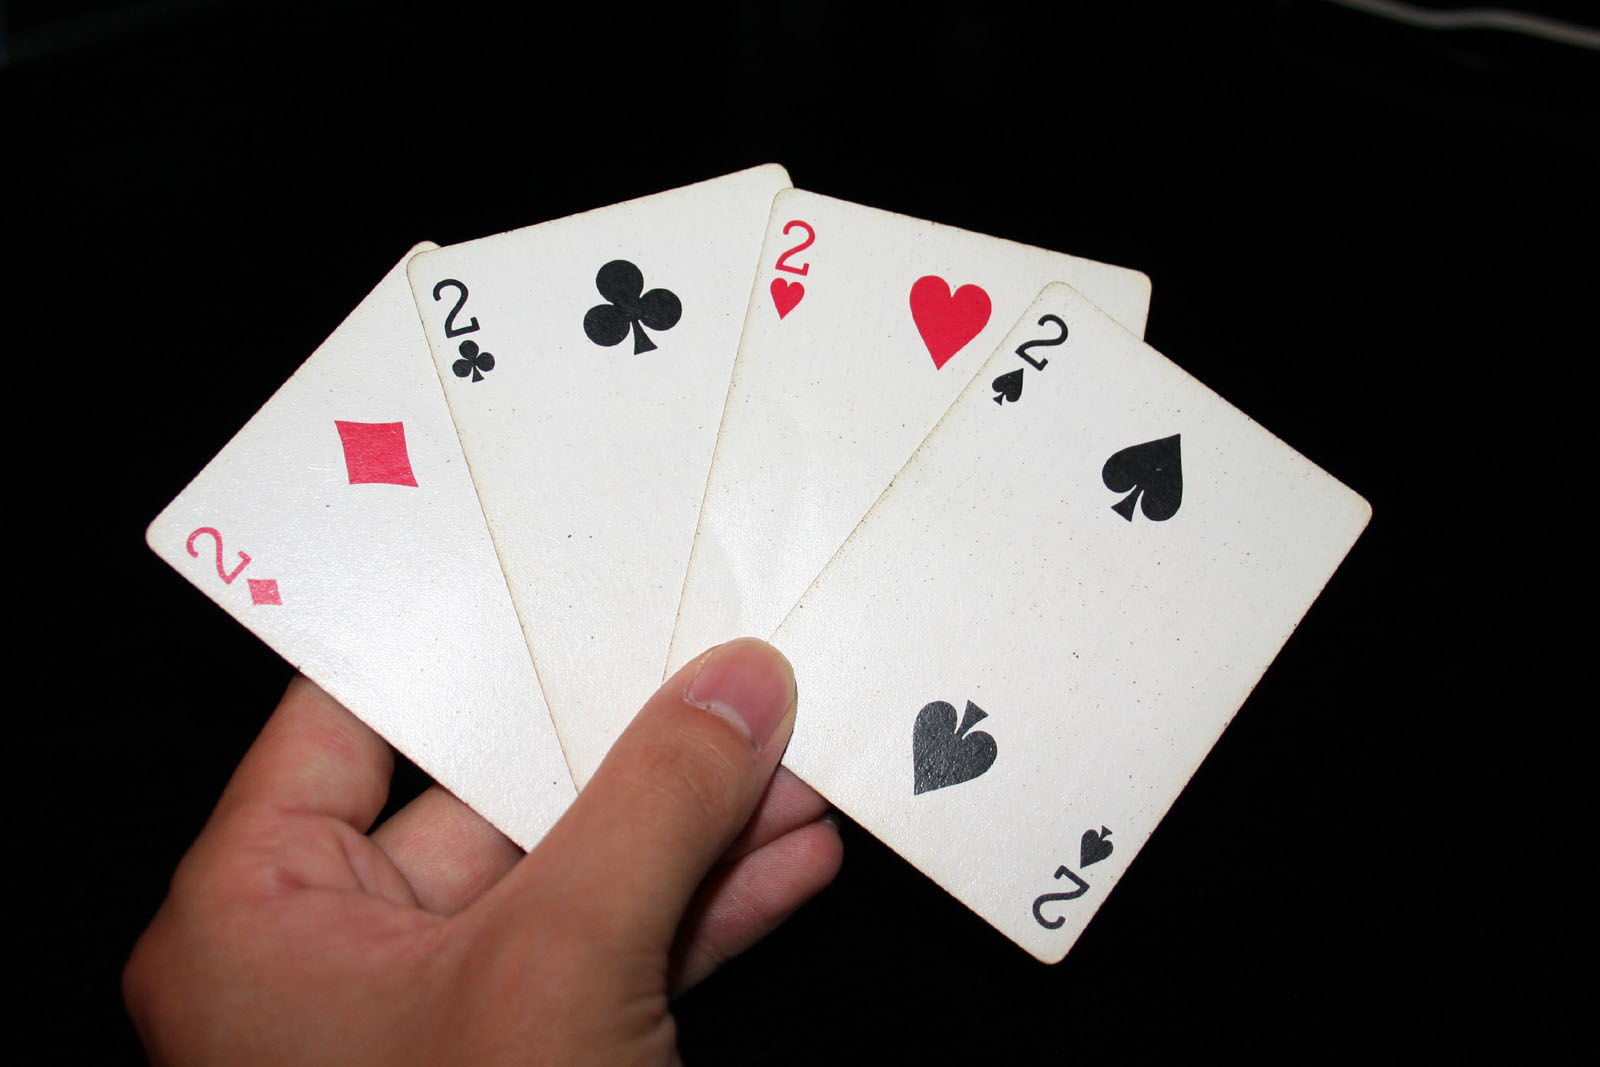 Description 2 playing cards